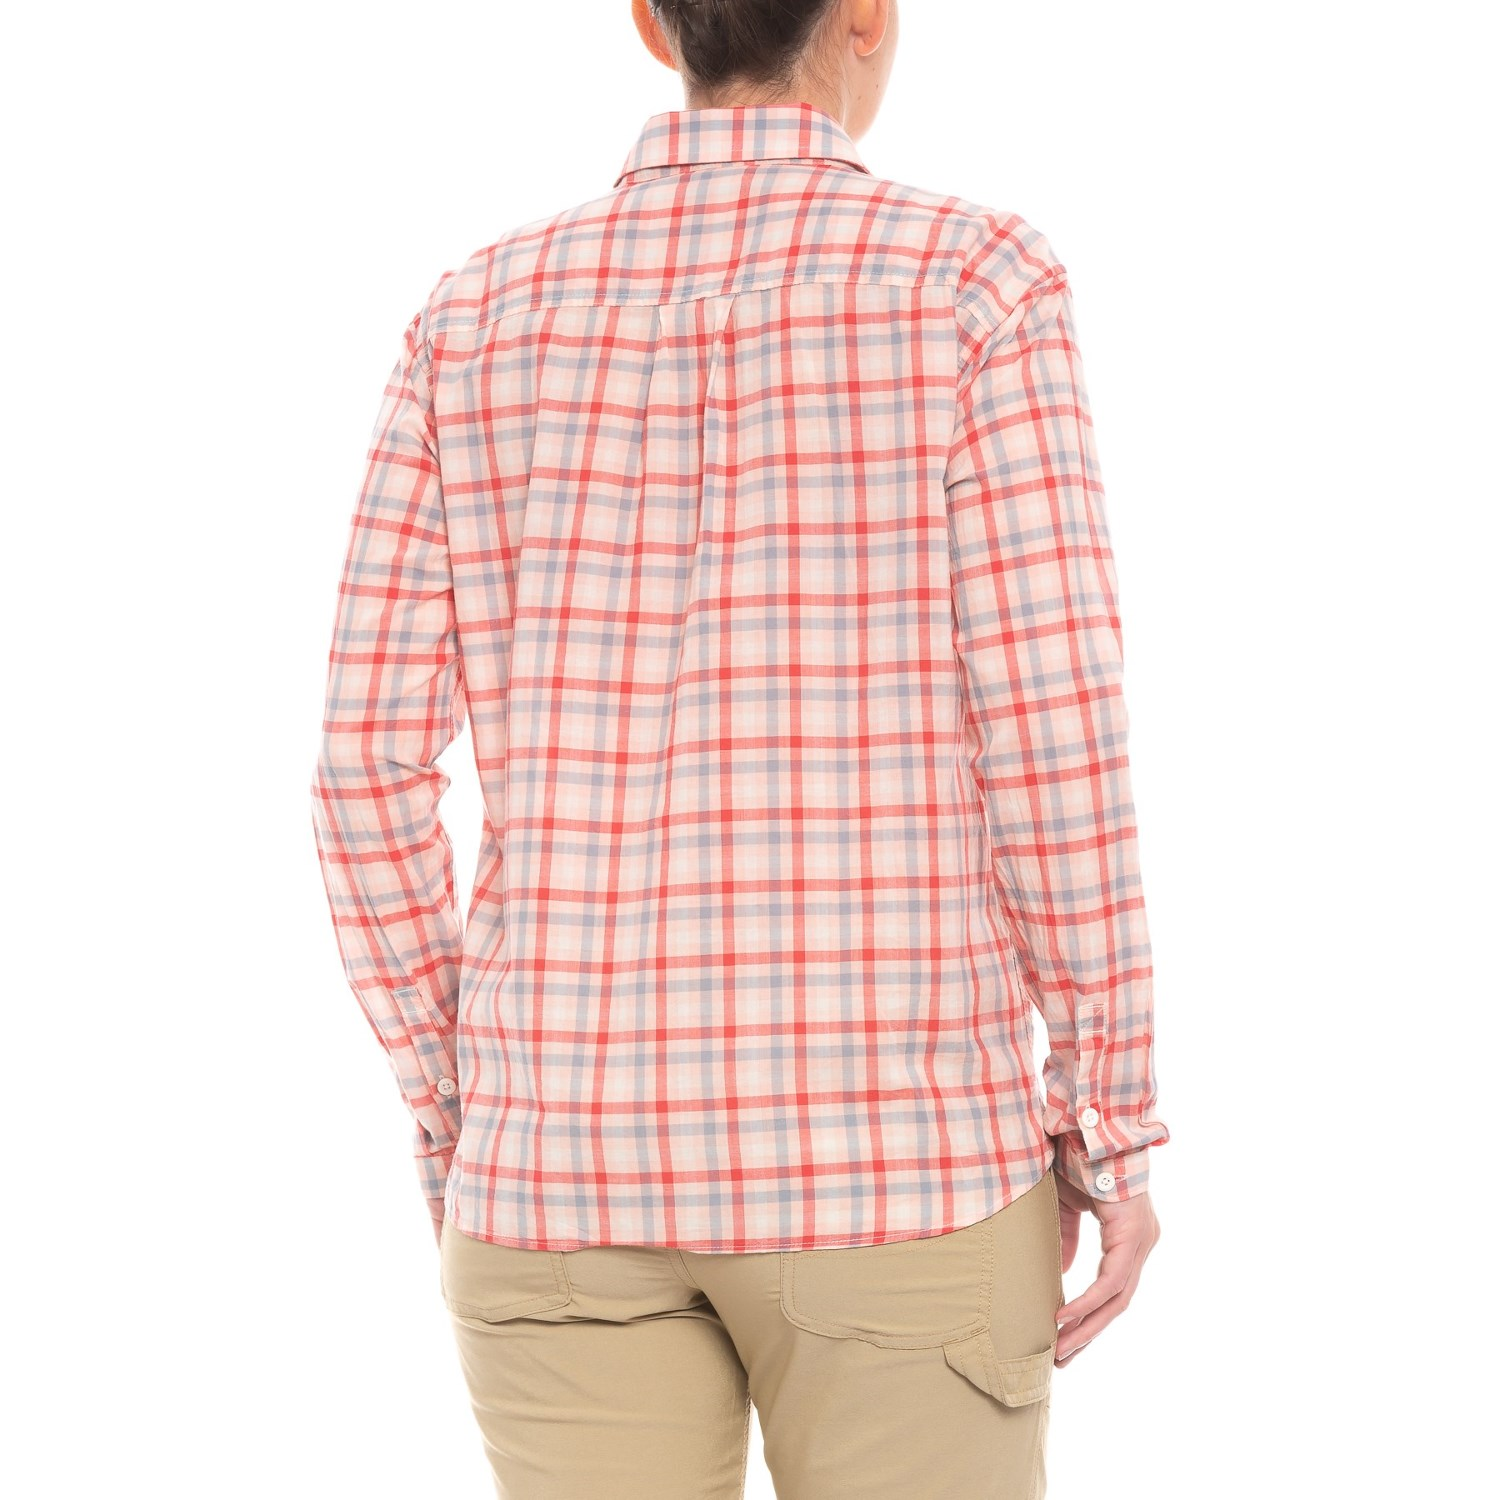 40b3e3a4b The North Face Barilles Pullover Shirt - Organic Cotton, Long Sleeve (For  Women)